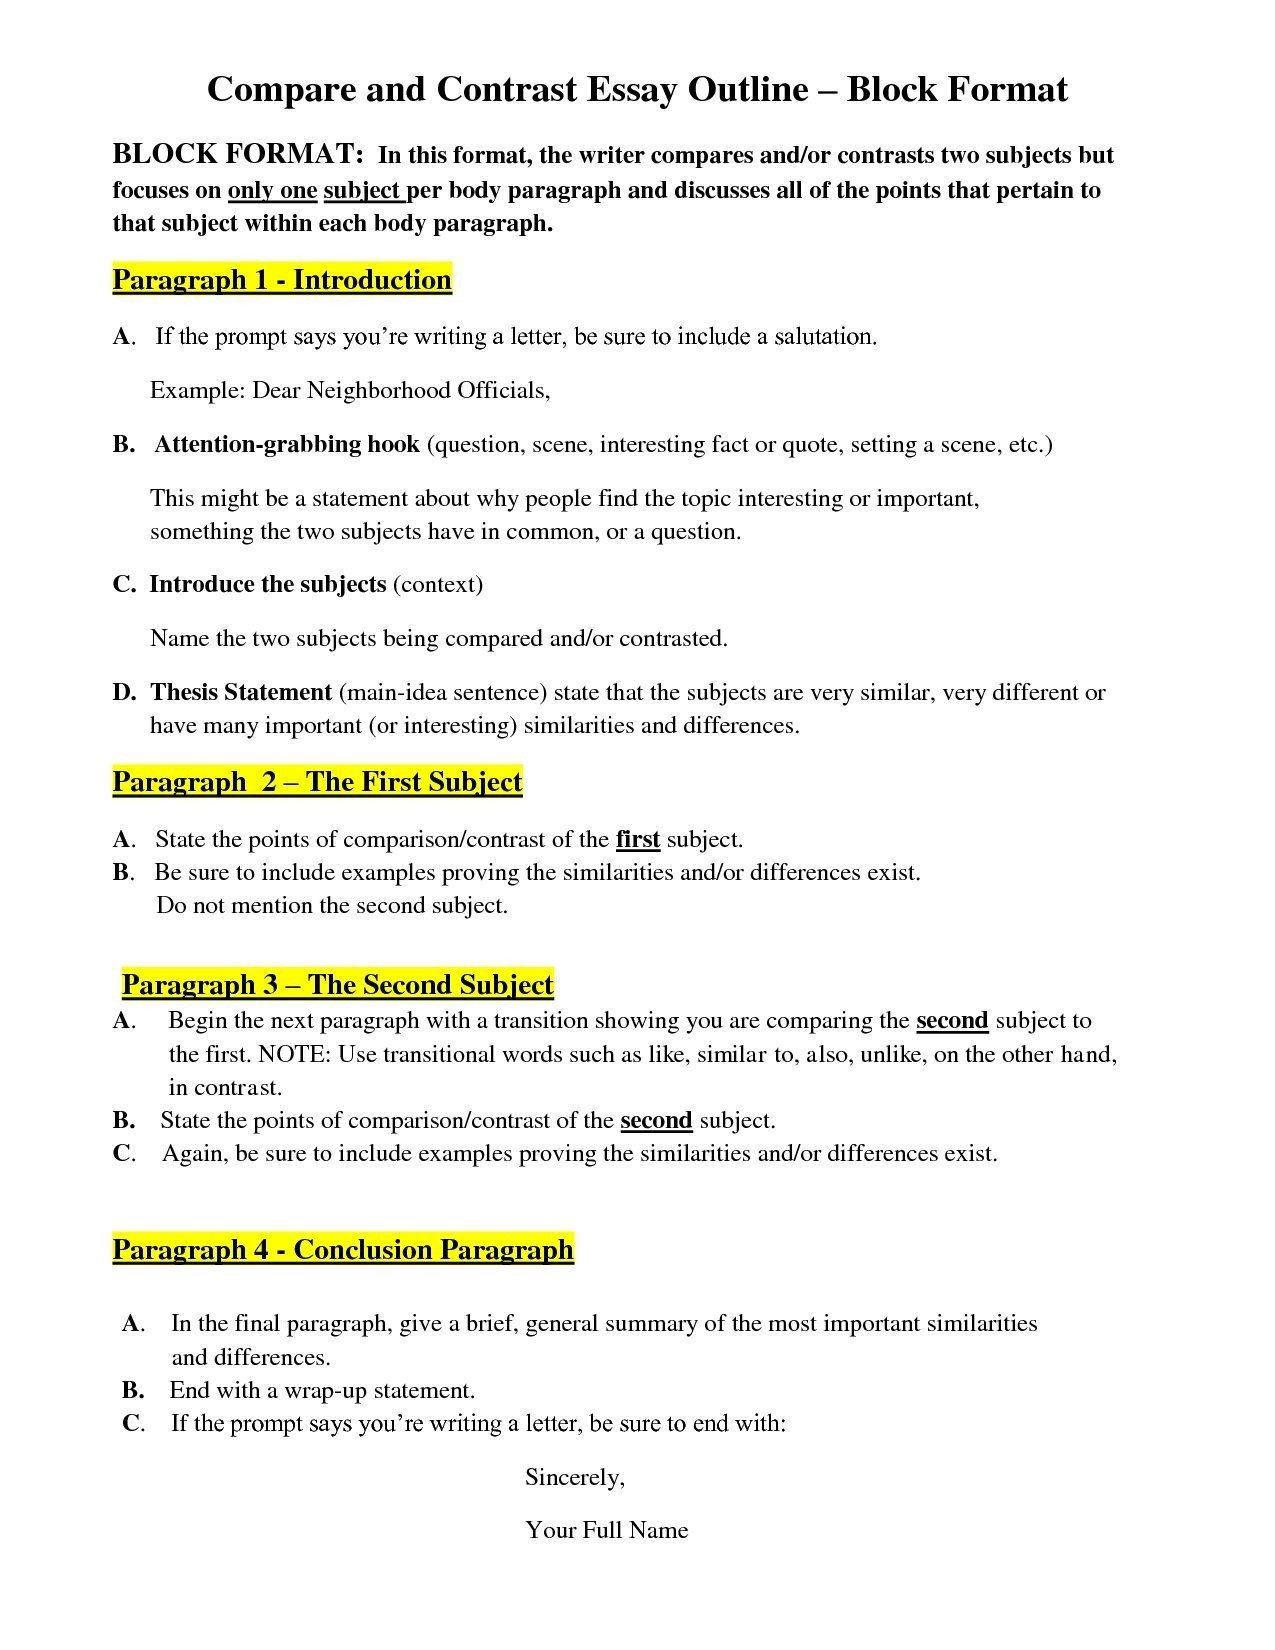 014 Essay Examplempare Andntrastmparison Best Examples Of Scenario In 6th Grade An Goo 3rd Food 5th Middle School Block Format Pdf High 4th Vs Striking Compare And Contrast Example For College Students Topics 7th Full